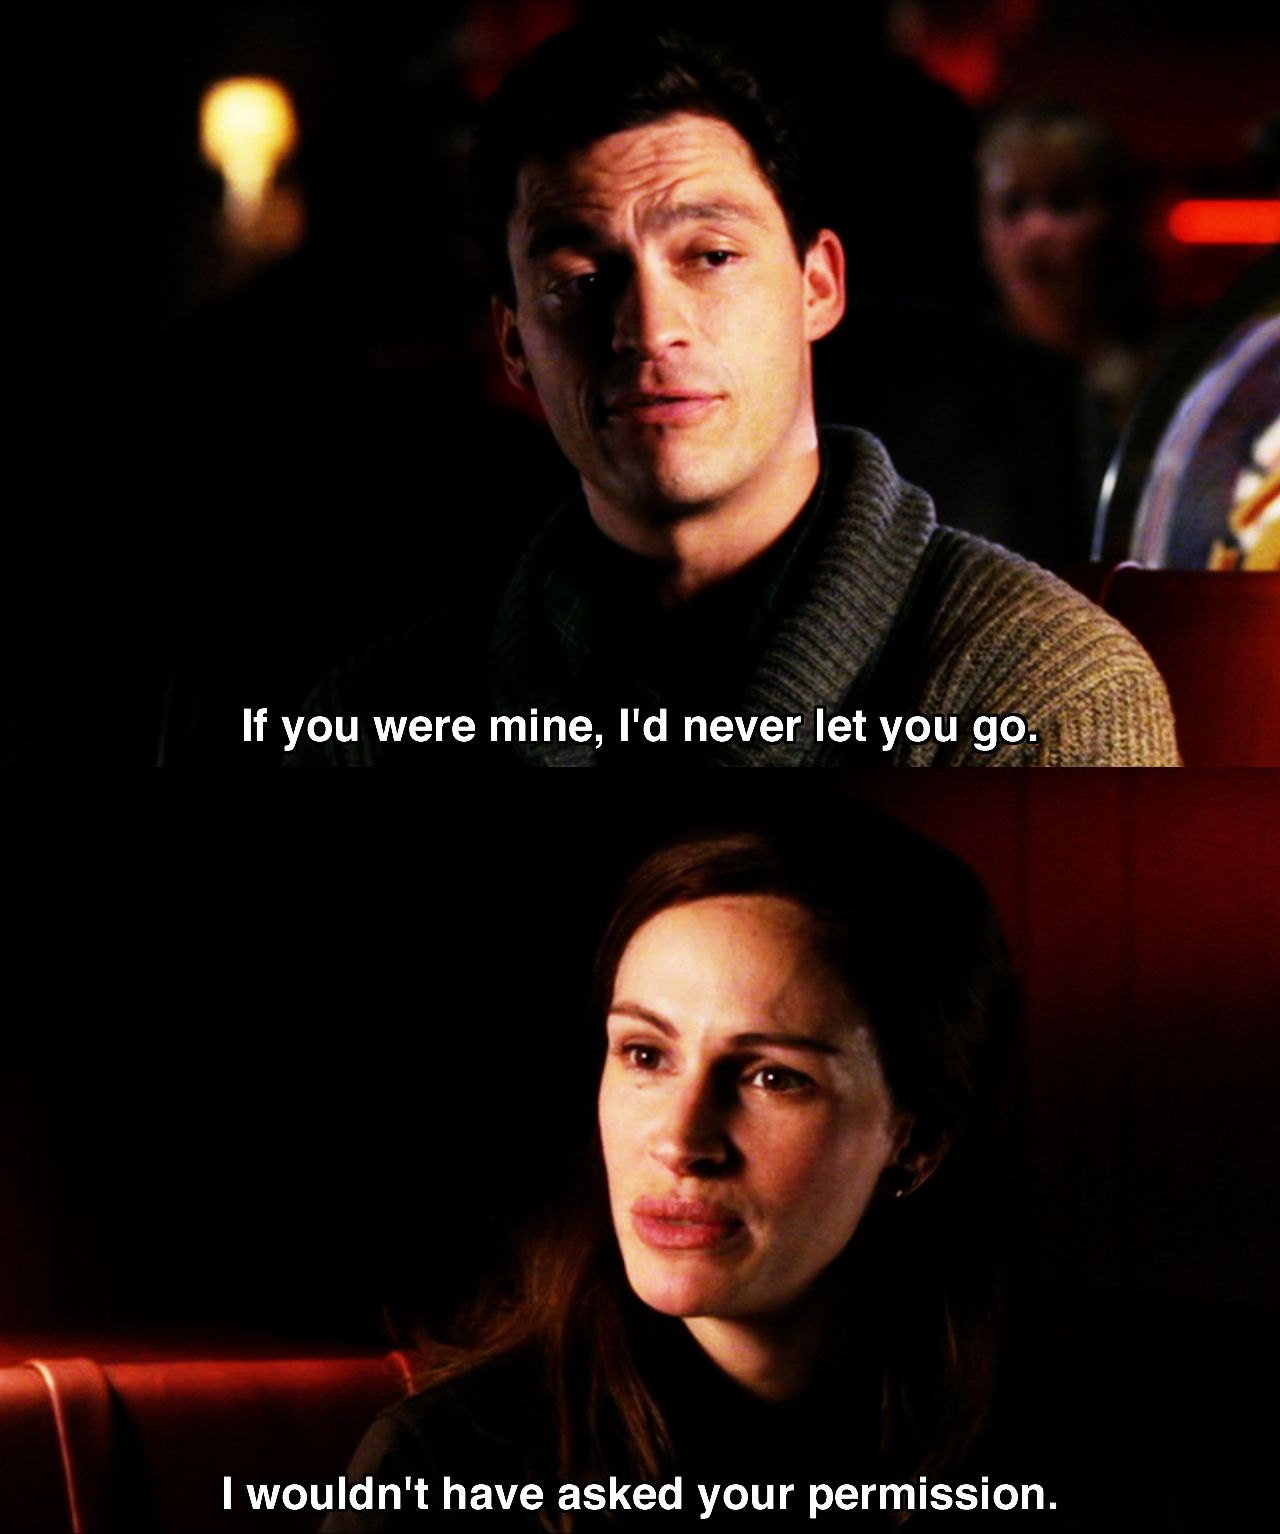 """Mona Lisa Smile- """"If you were mine, I'd never let you go."""" """"I wouldn't have asked your permission."""""""